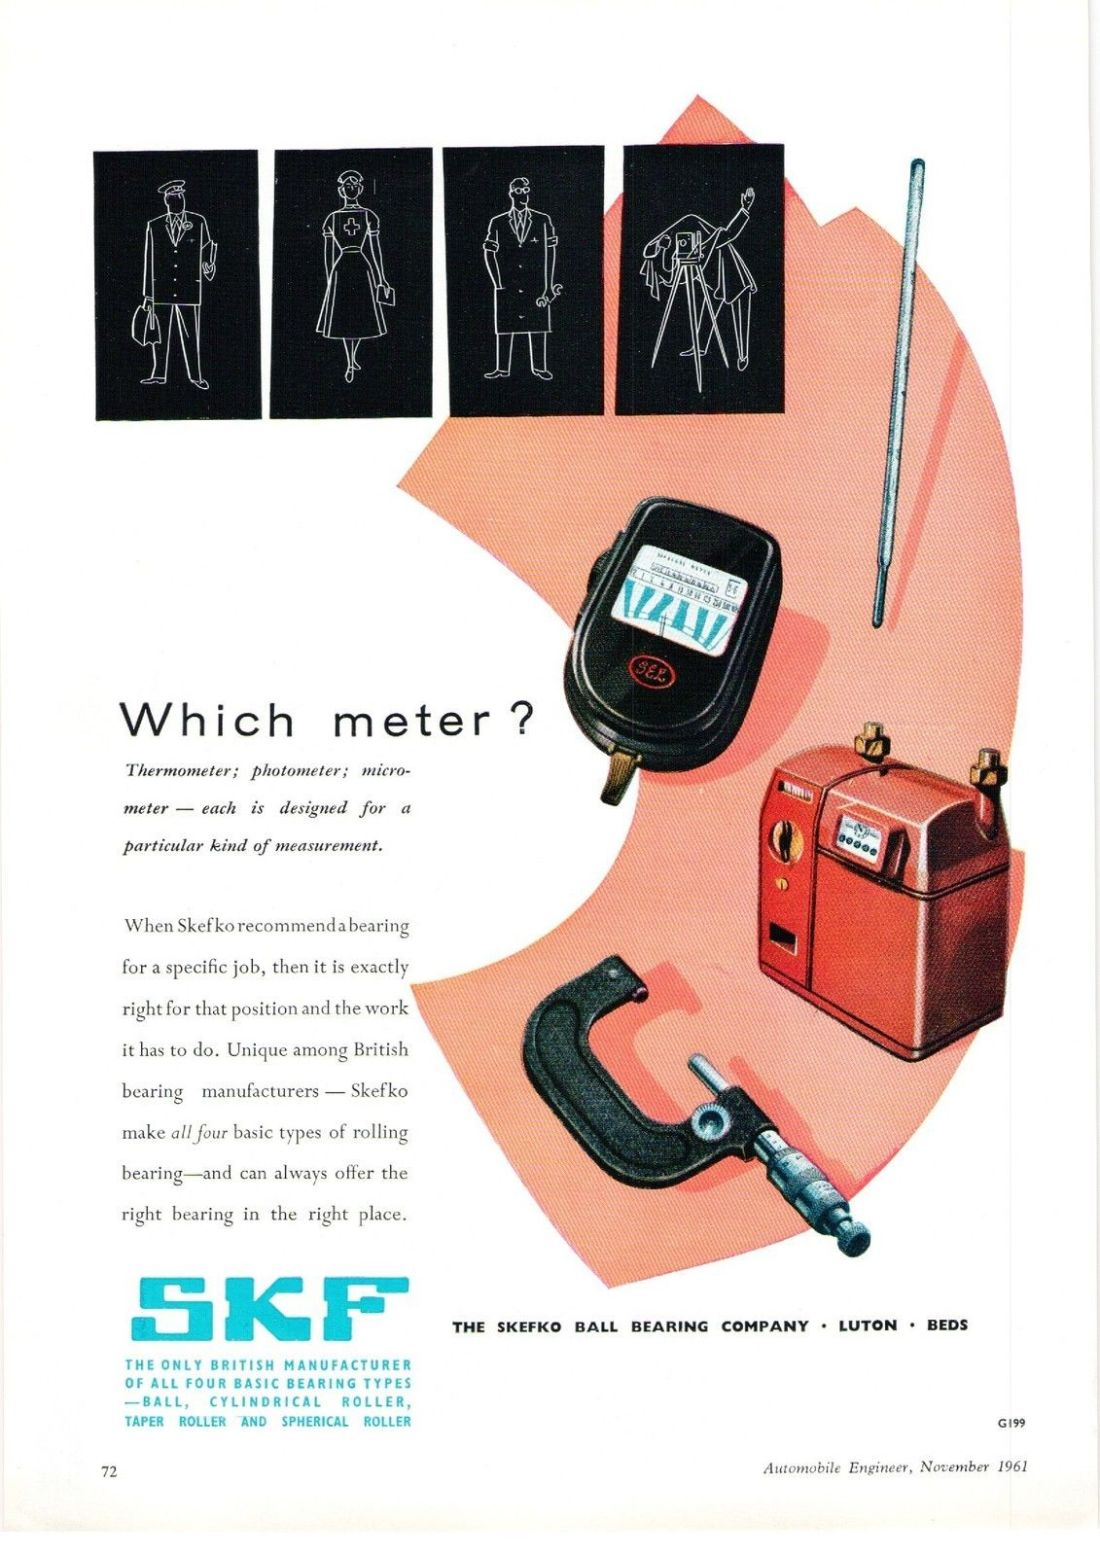 SKF 1960 advert